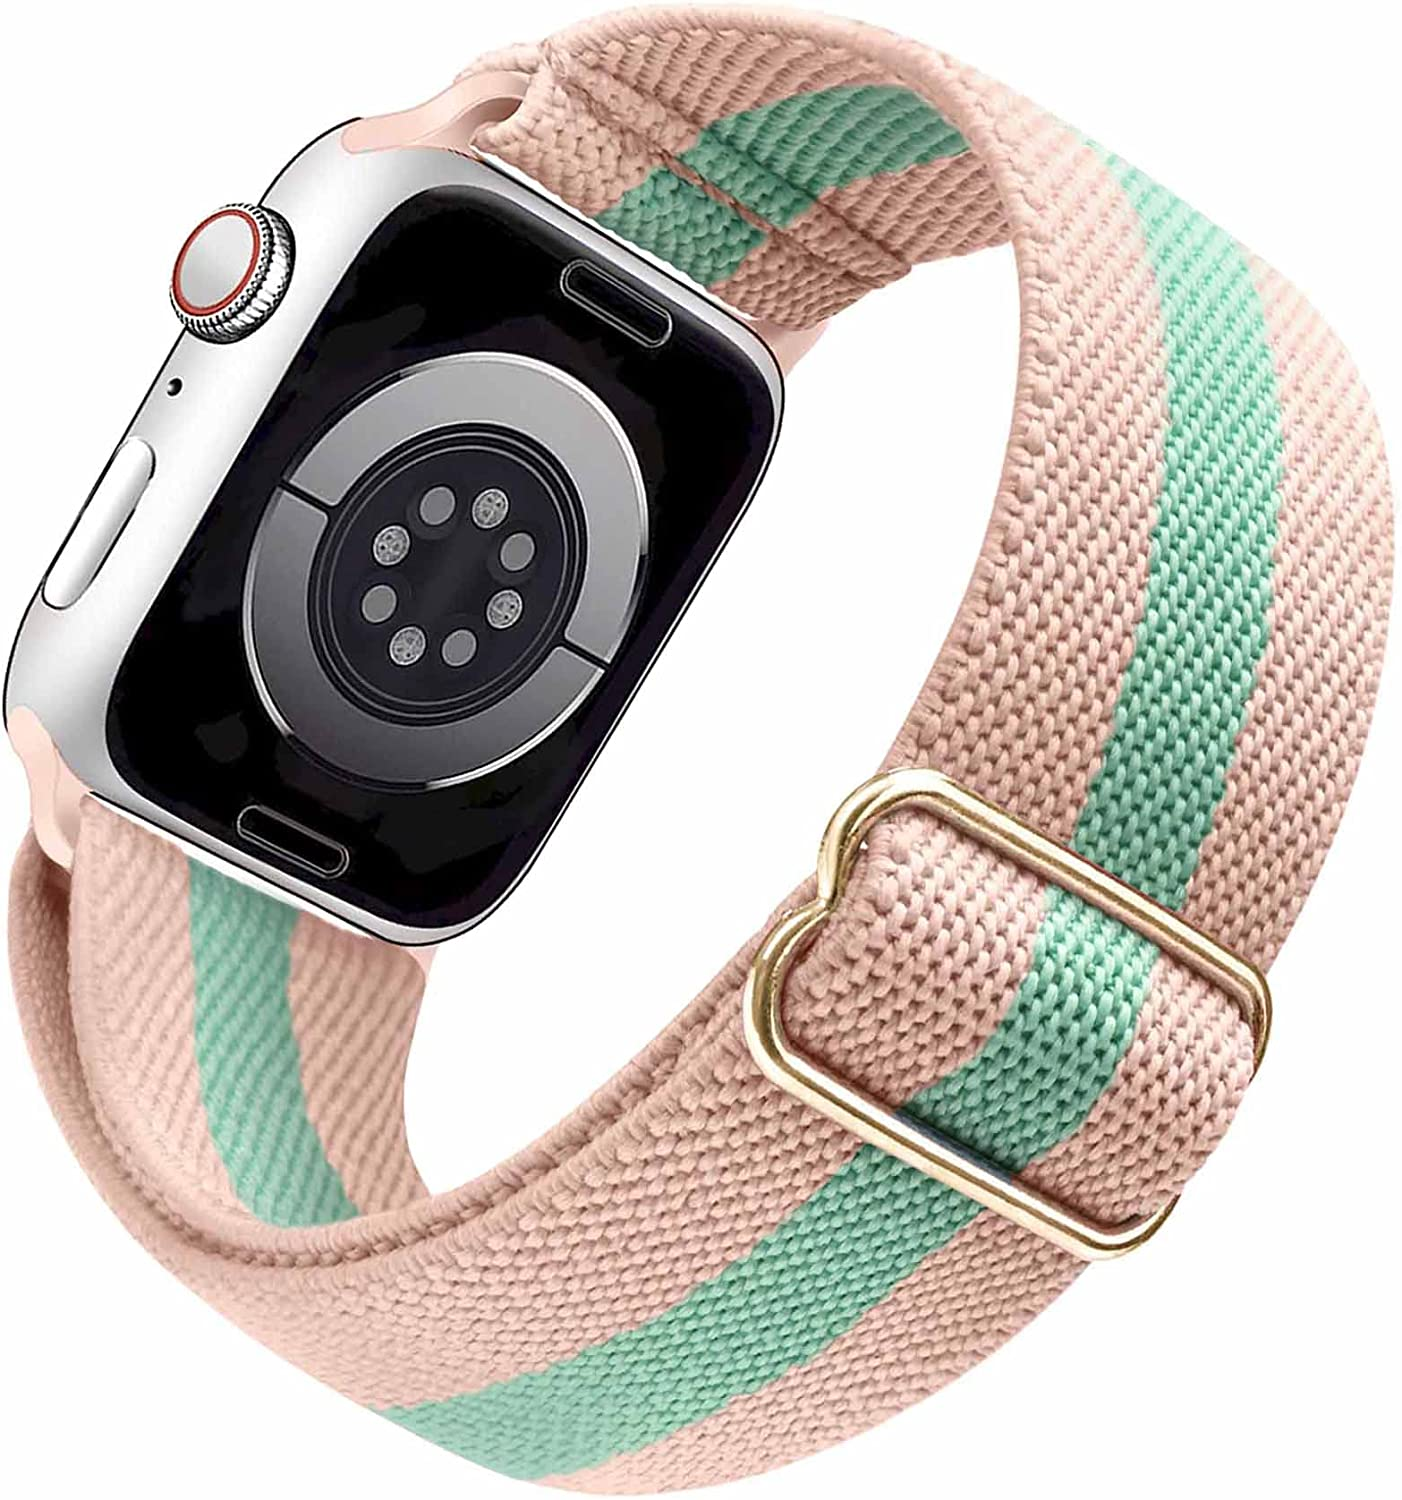 Arae Stretchy Watch Band Compatible for Apple Watch Band 45mm 44mm 42mm Comfortable Adjustable Sport Band for iWatch Series 7 6 5 4 SE 3 2 1 Women Men - Pink